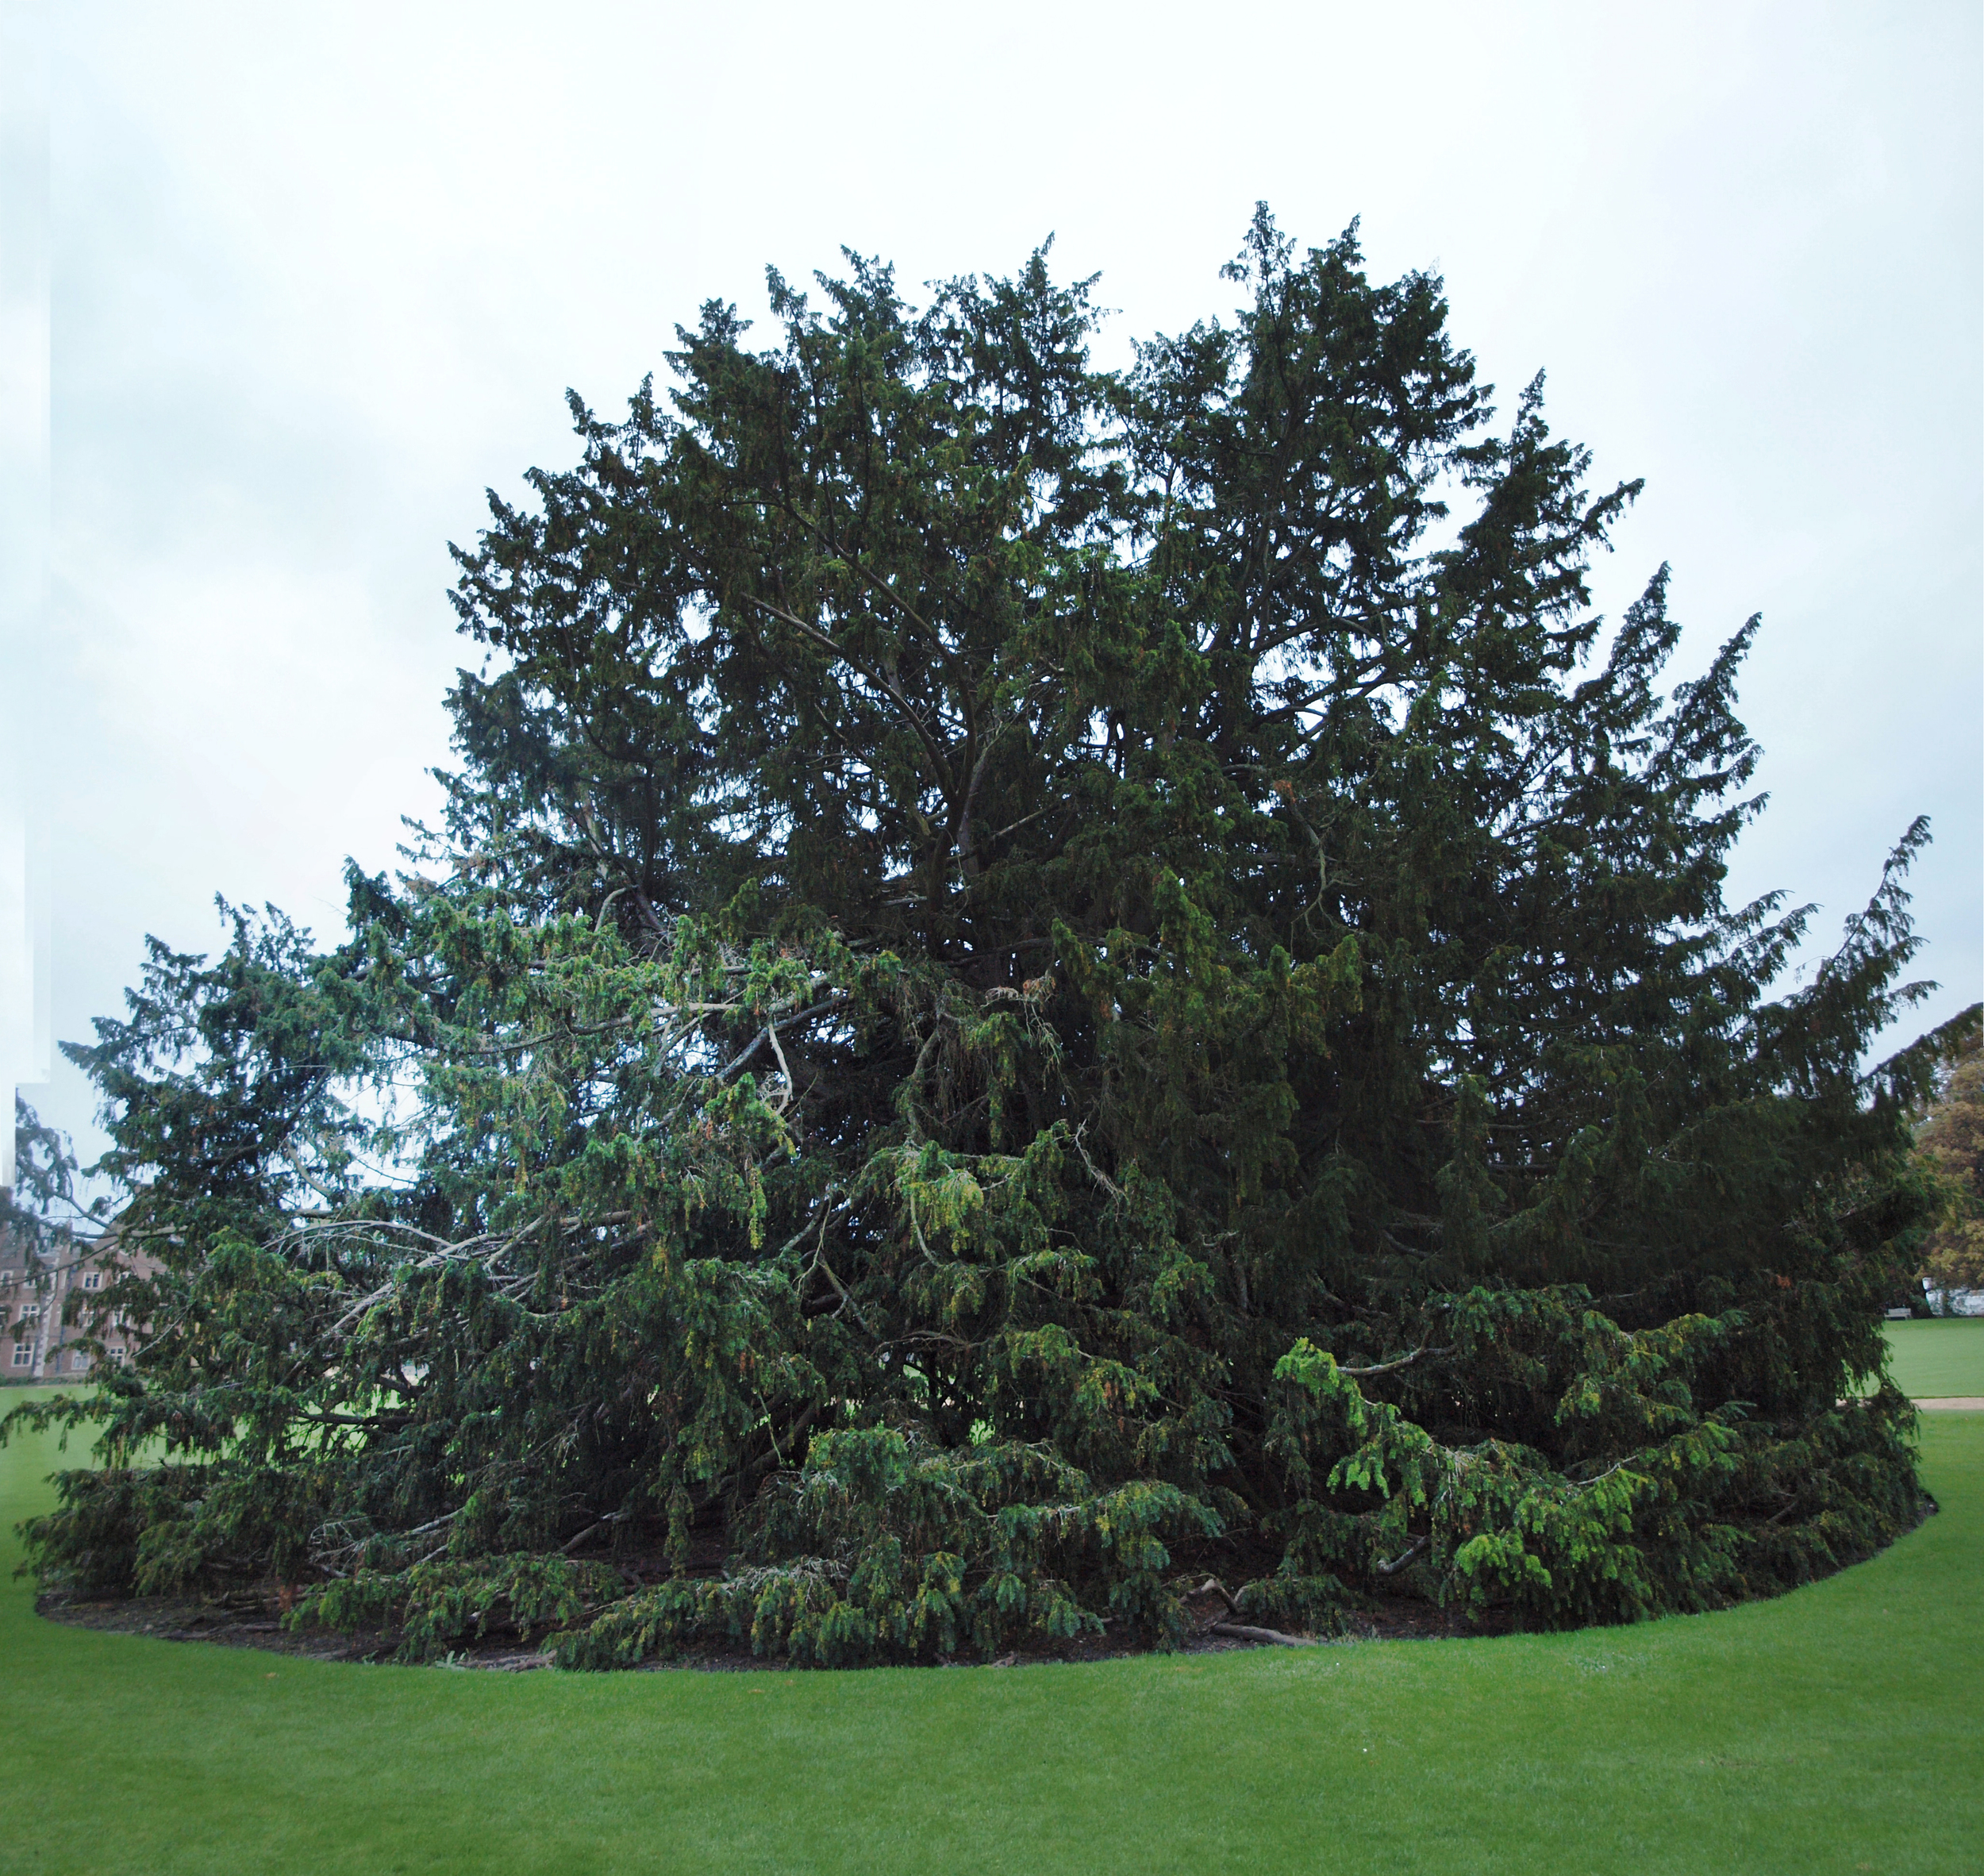 A tree slouching to the ground